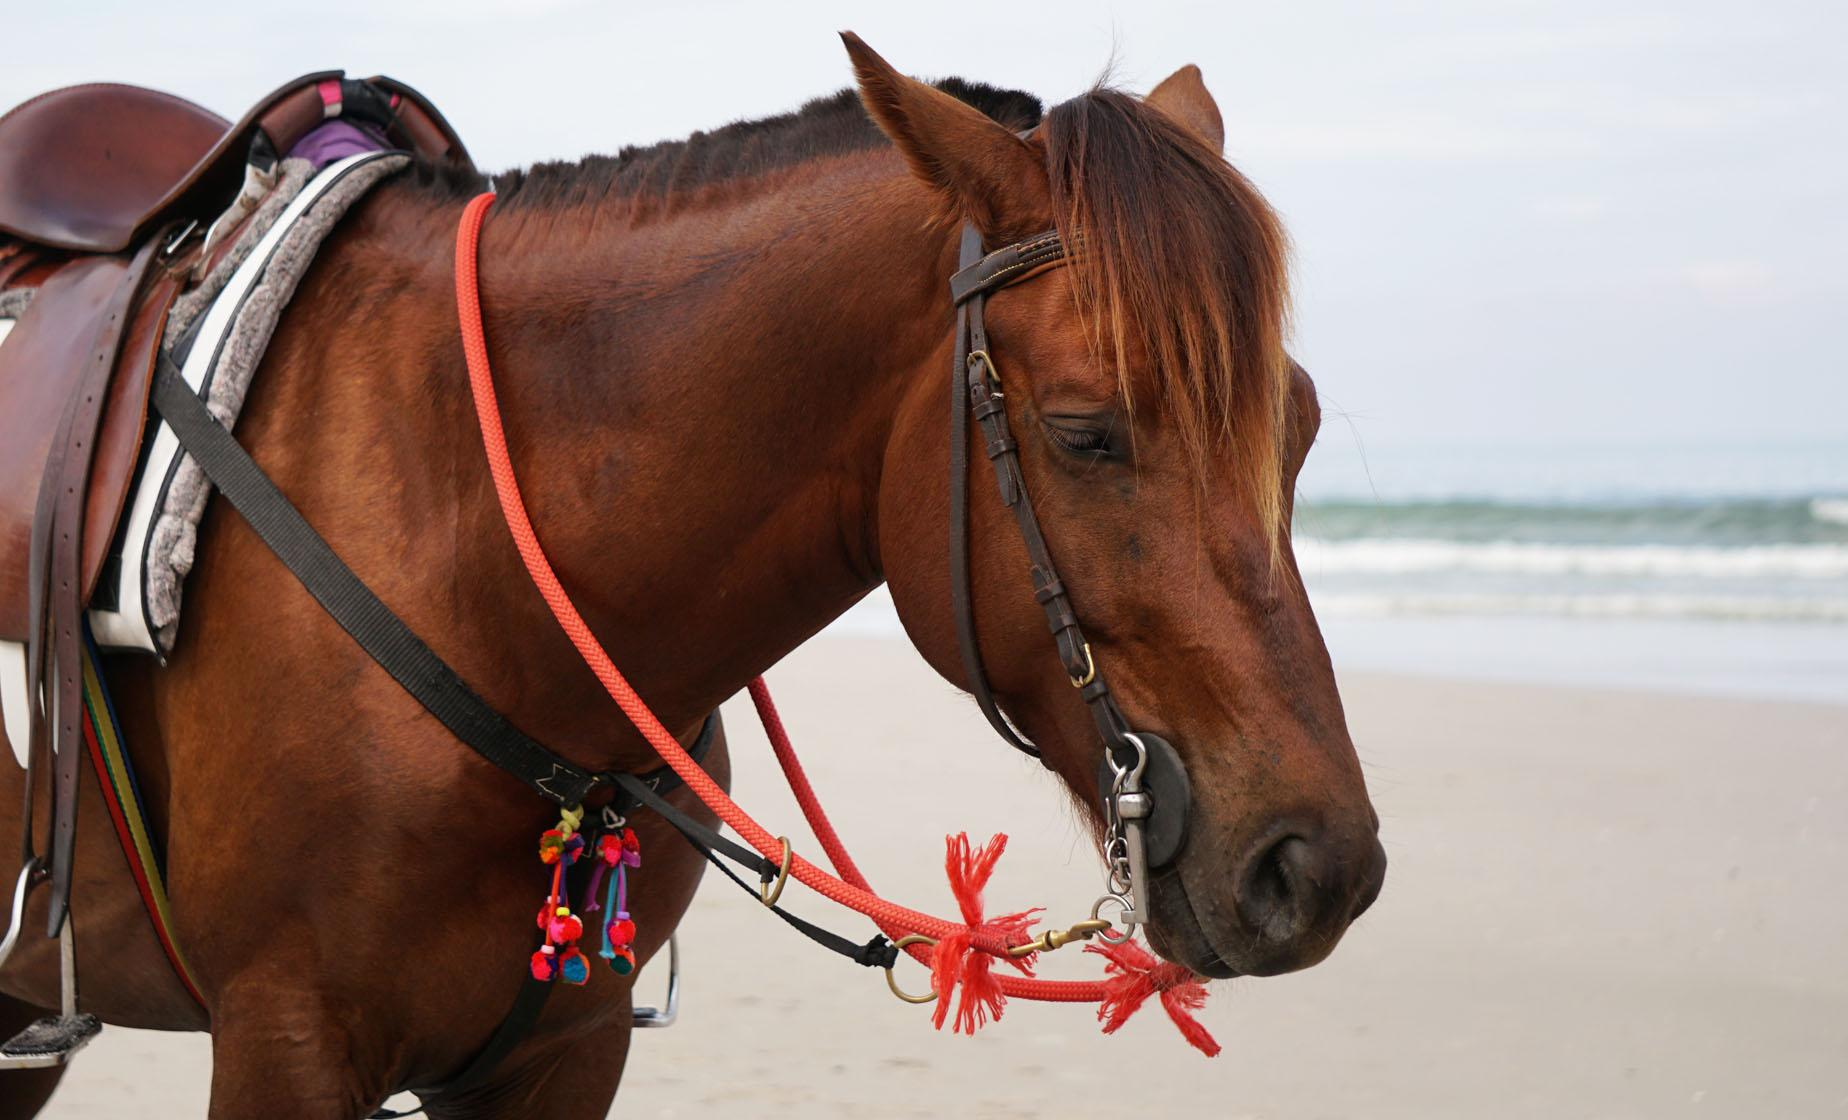 Horseback Ride & Snorkel Cruise Excursion in Roatan